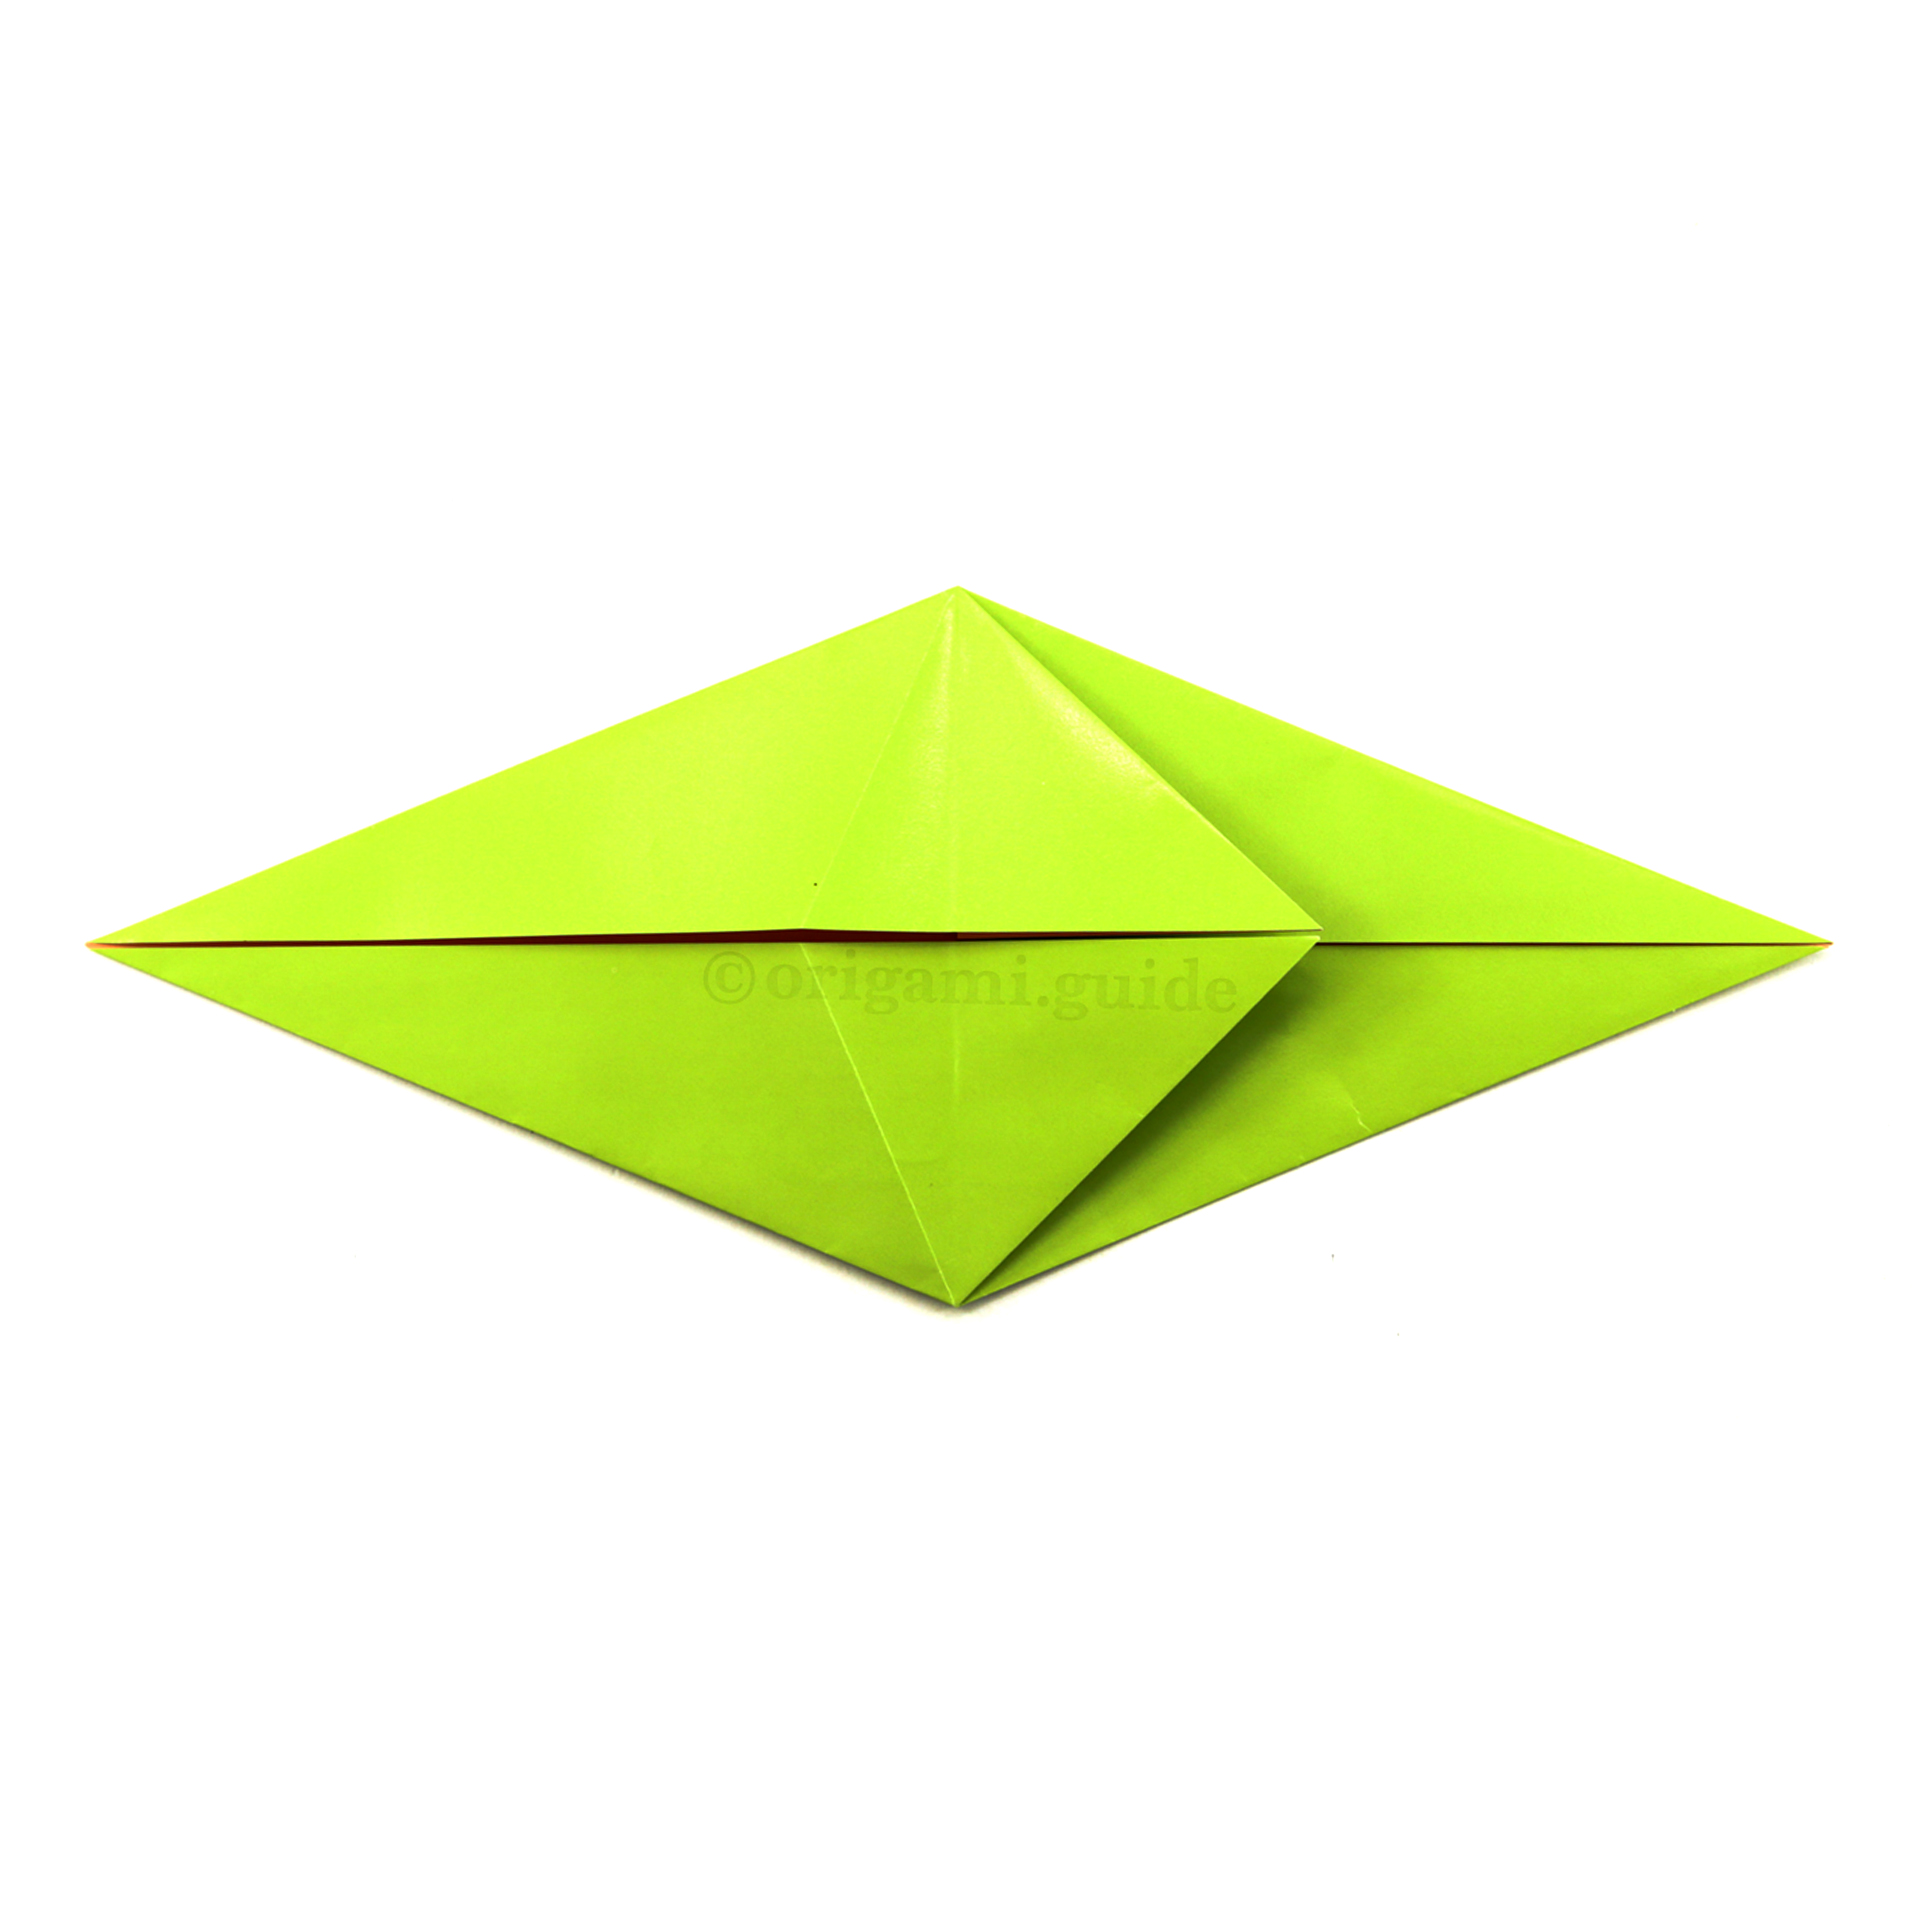 how to make an origami fish base origami guide rh origami guide Bear Origami Guide Origami Swan Guide